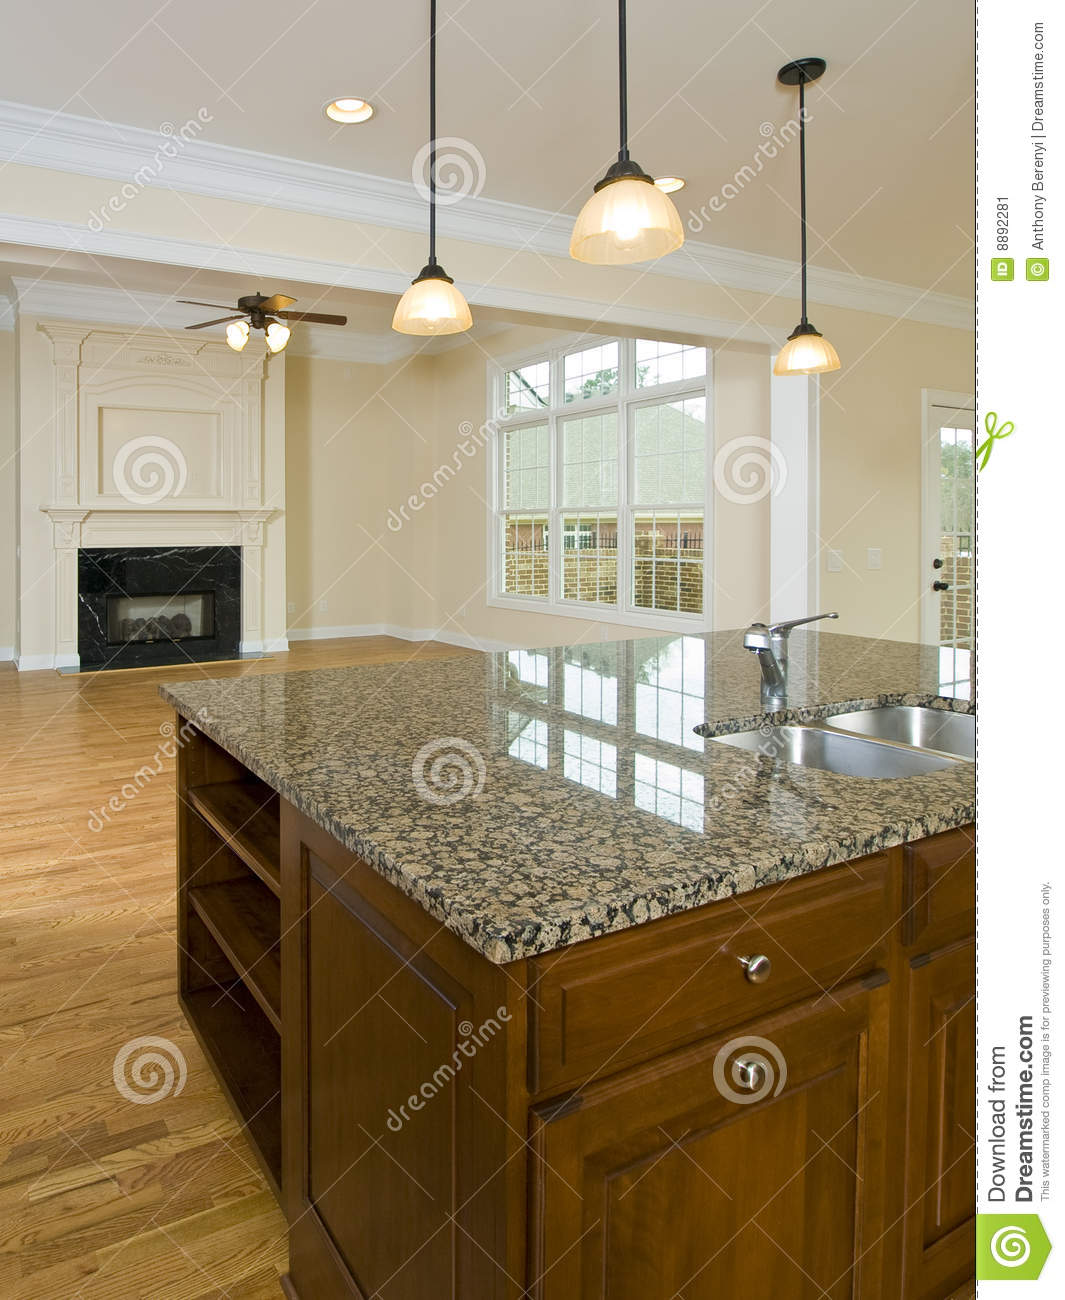 luxury home kitchen island and family room stock image image